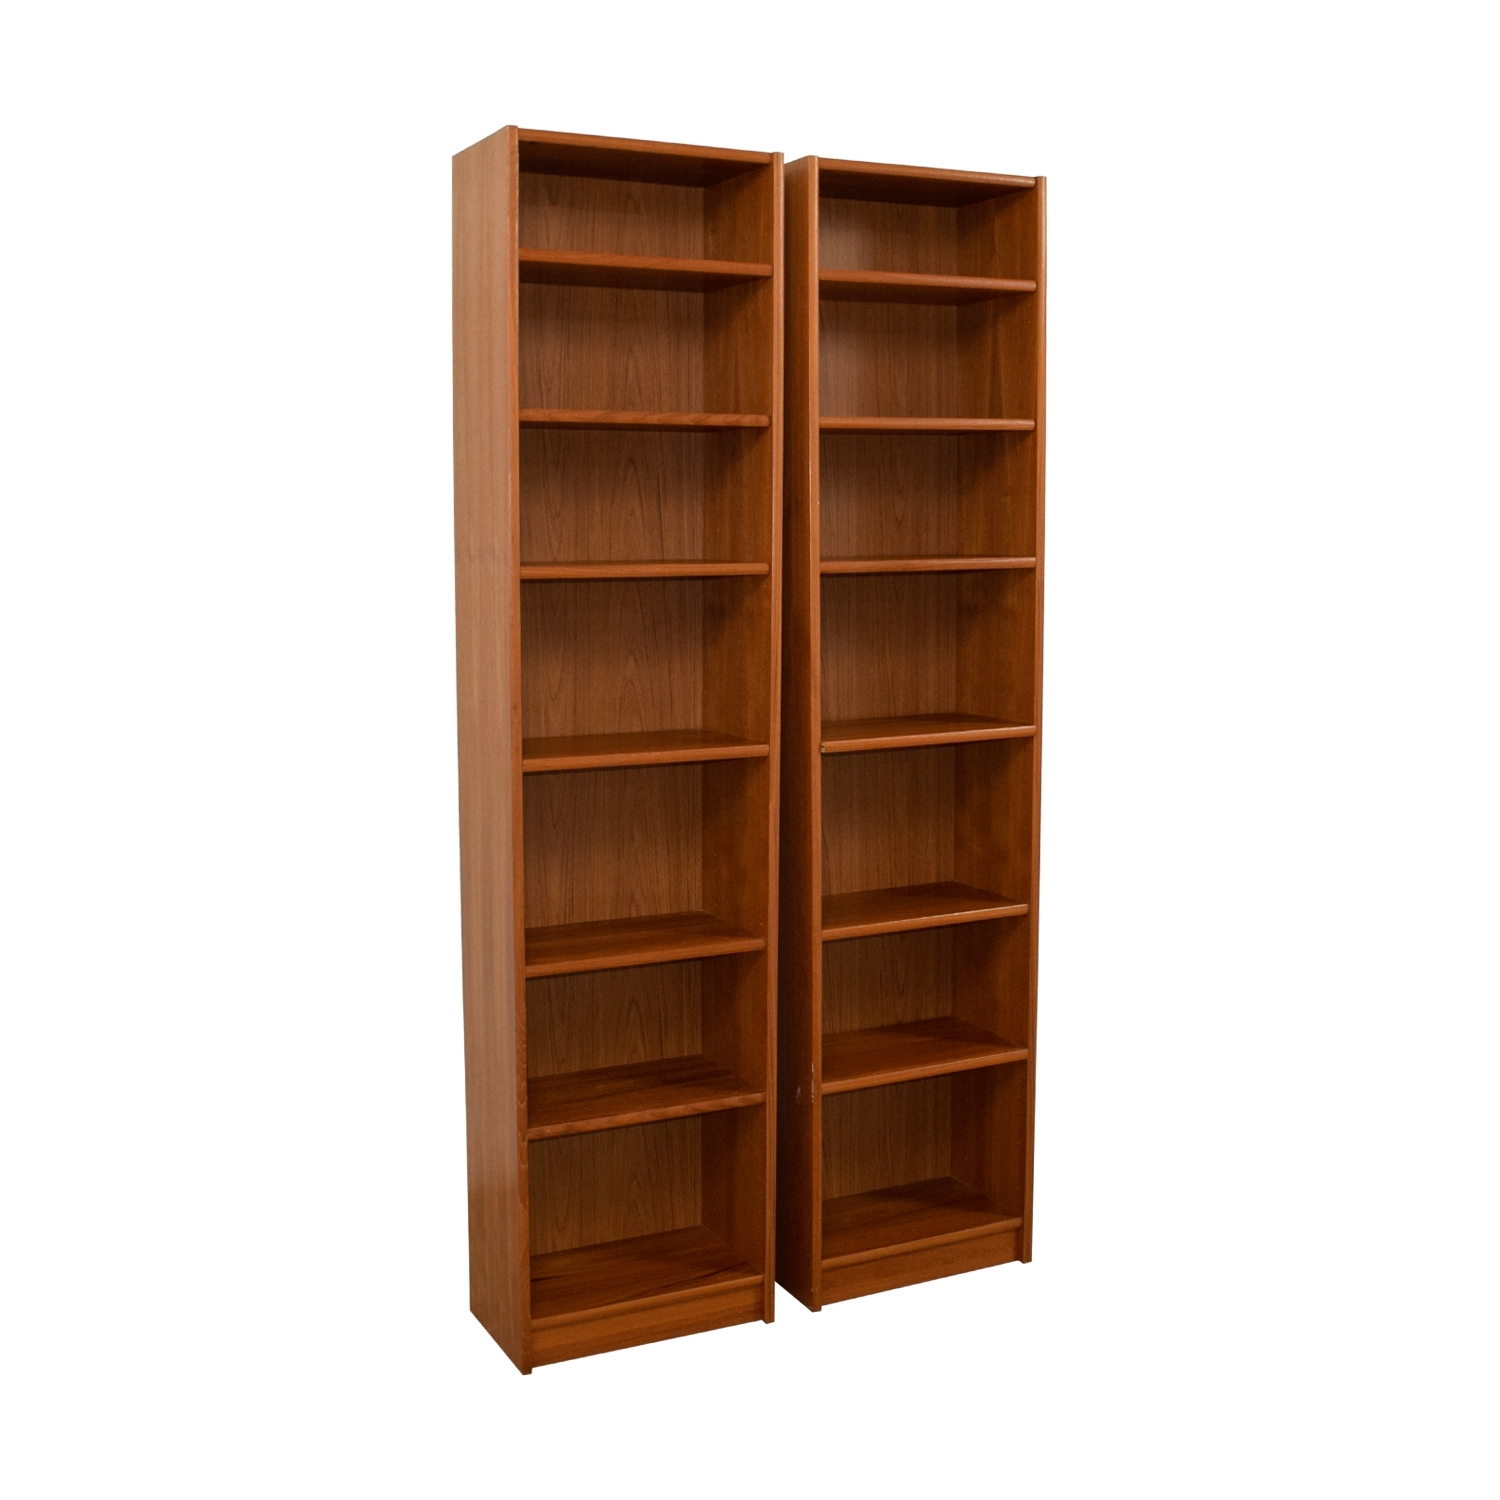 [%48% Off – The Door Store The Door Store Wood Bookcases / Storage Intended For Most Popular Wood Bookcases|wood Bookcases In Widely Used 48% Off – The Door Store The Door Store Wood Bookcases / Storage|2017 Wood Bookcases Intended For 48% Off – The Door Store The Door Store Wood Bookcases / Storage|2017 48% Off – The Door Store The Door Store Wood Bookcases / Storage Pertaining To Wood Bookcases%] (View 7 of 15)